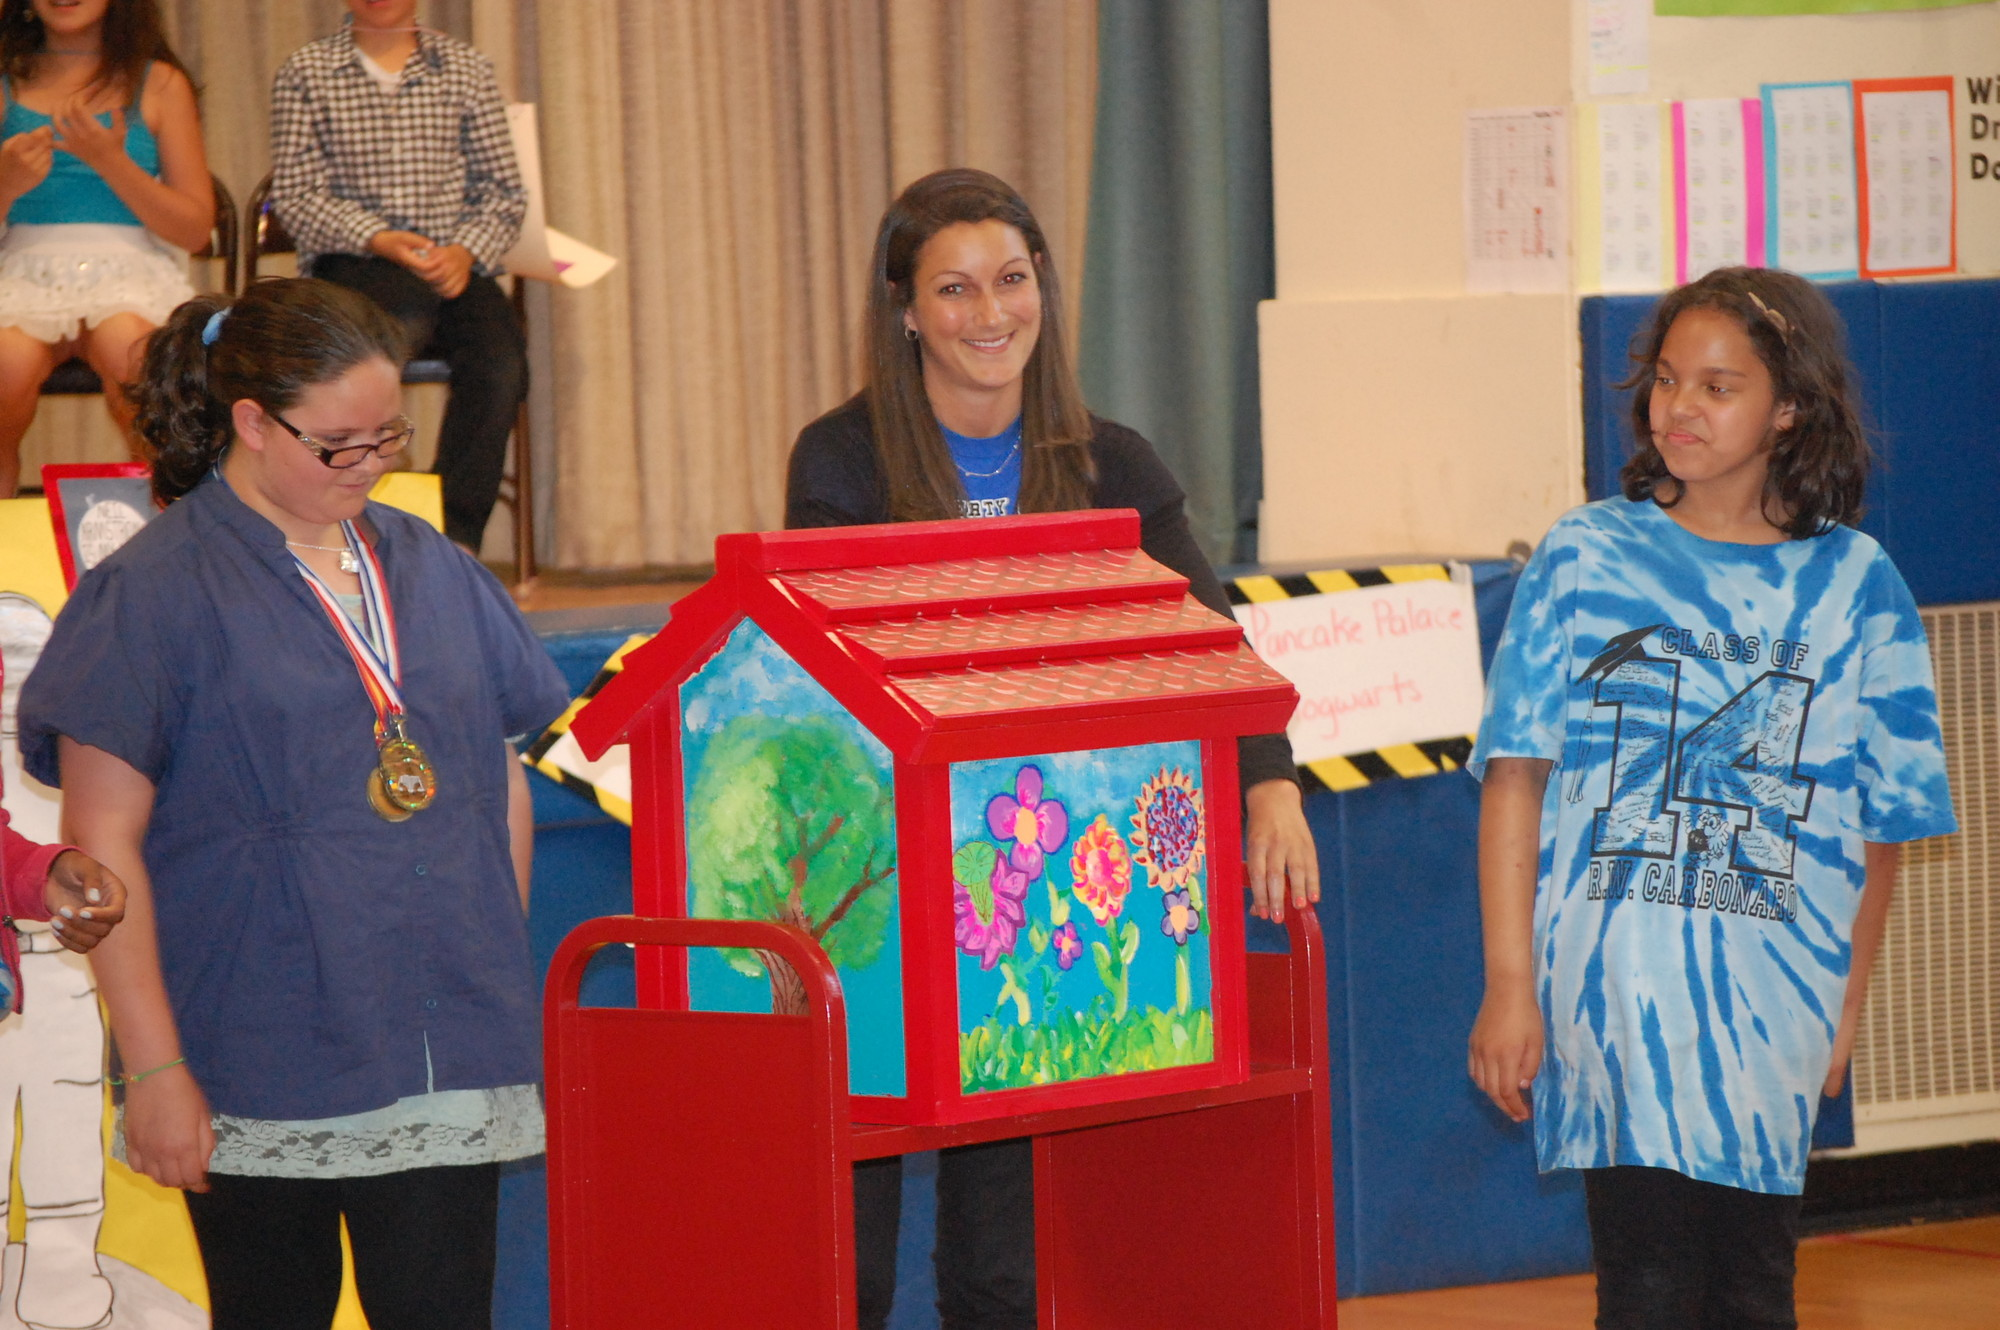 Art Teacher Jessica Garfinkel, center, and students from the Robert W. Carbonaro School art club presented the Little Free Library on May 29.